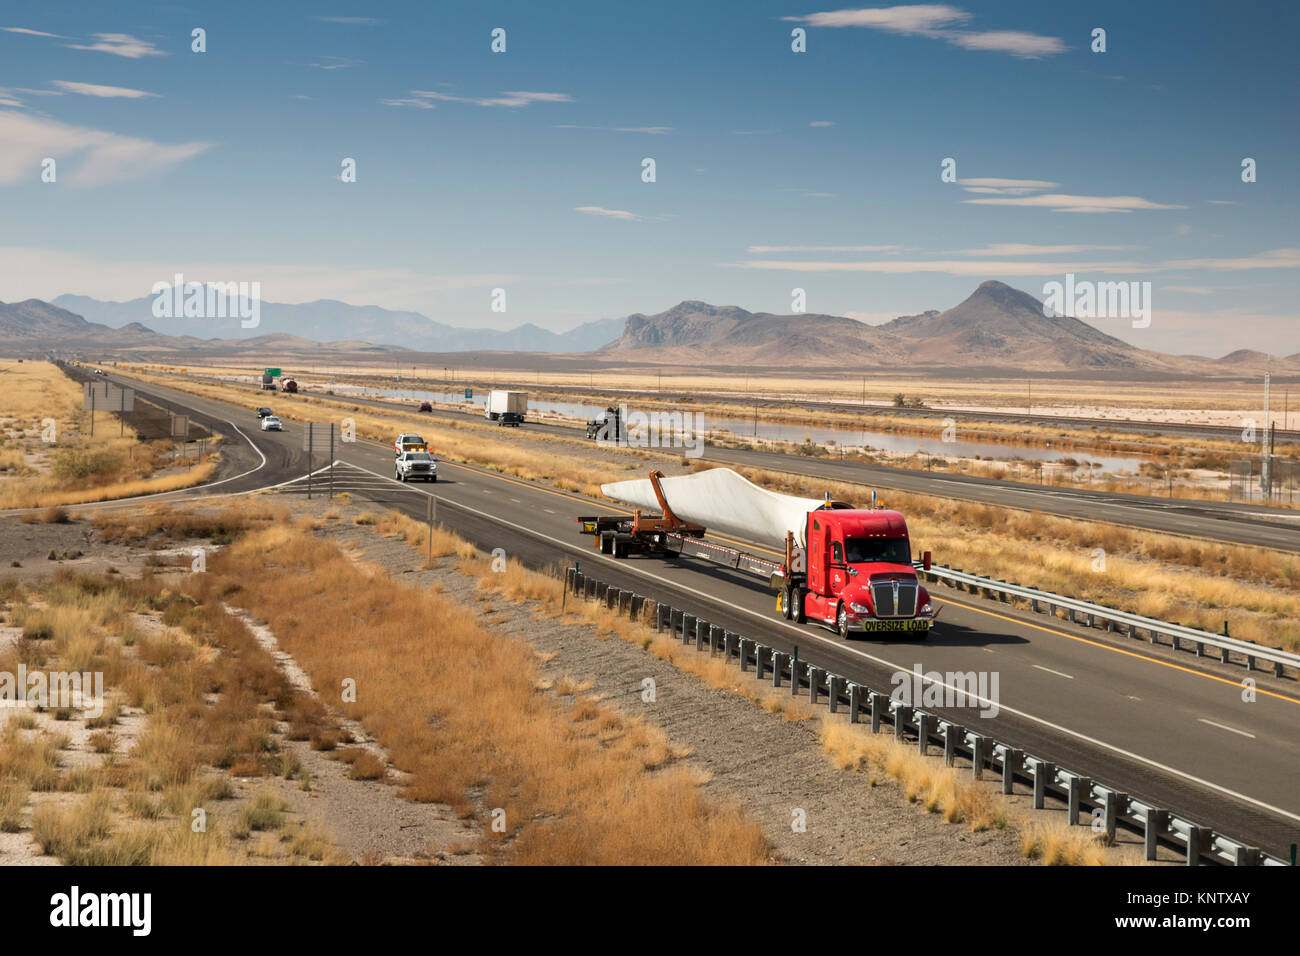 Lordsburg, New Mexico - A truck carries a blade for a wind turbine on Interstate 10. - Stock Image